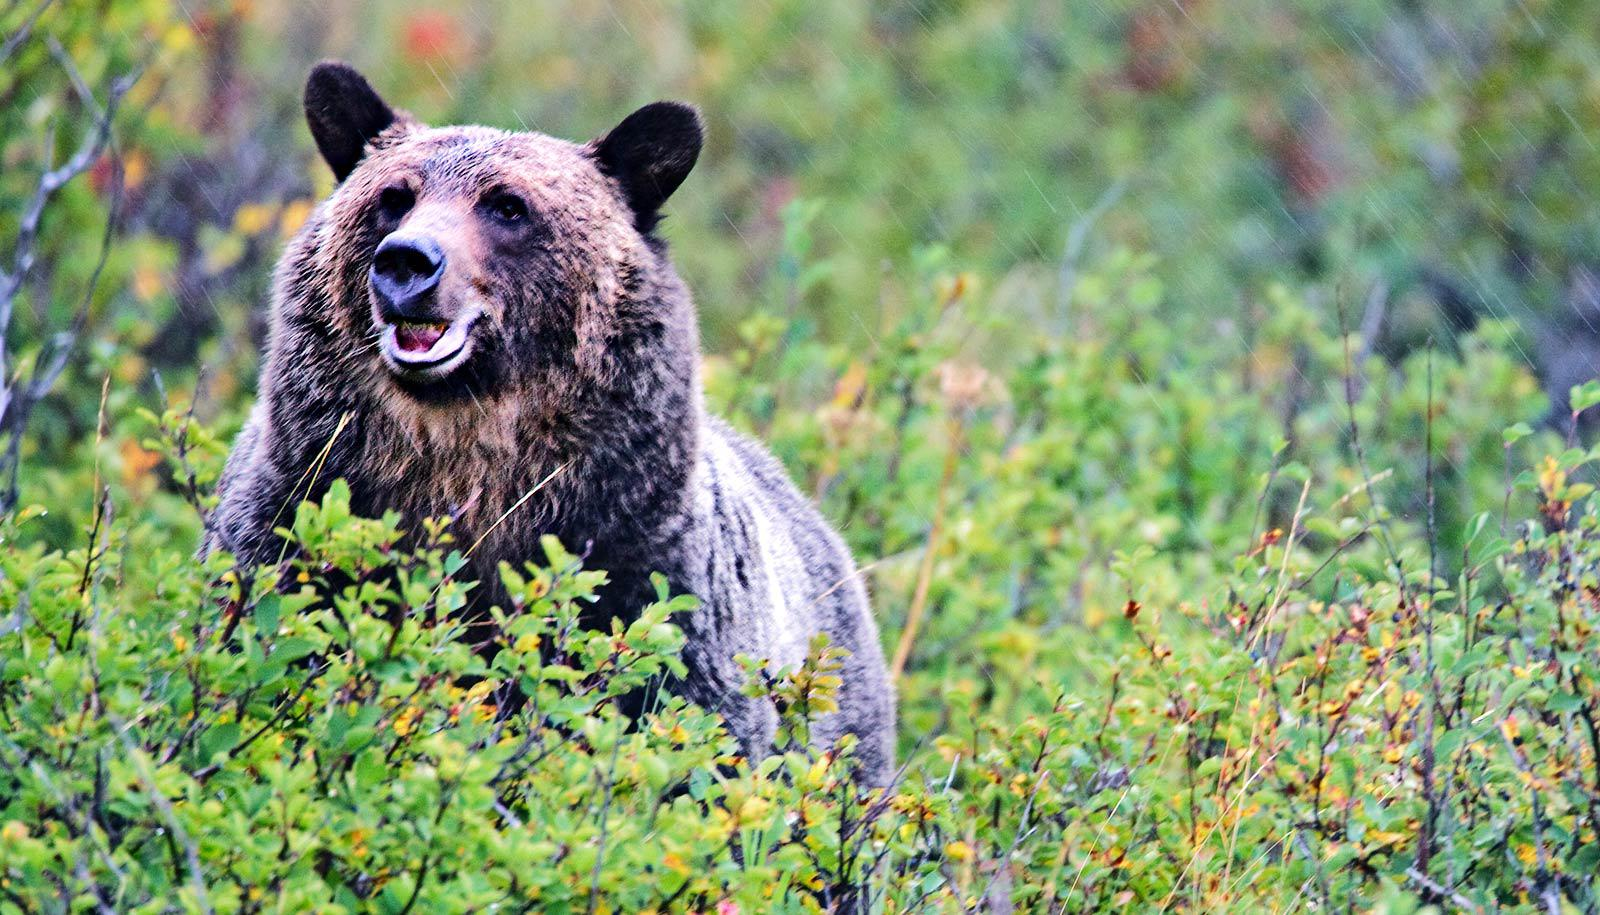 grizzly bear in huckleberry bushes